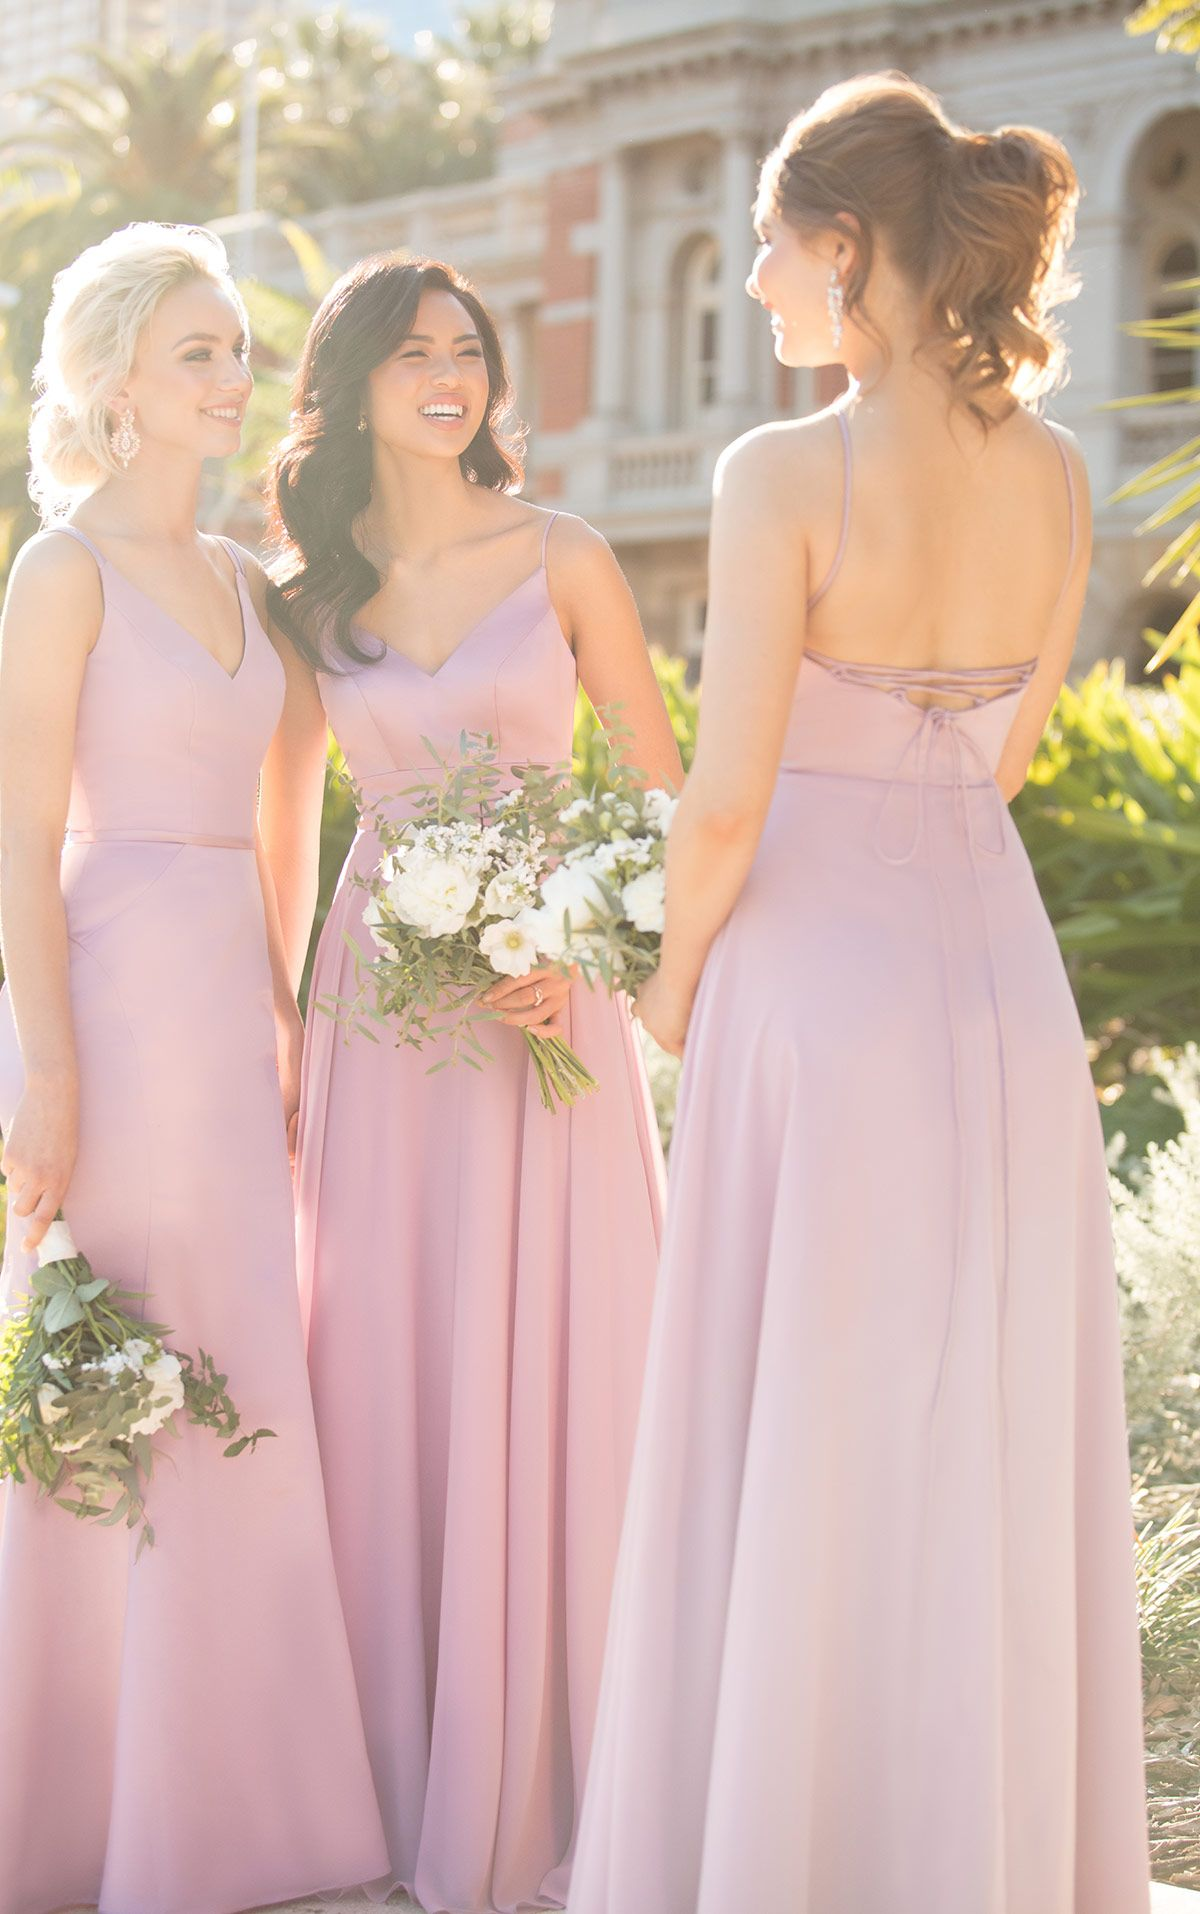 86a156134e4e Blush pink with a multi-wear back option! We are loving these new styles by  Sorella Vita!